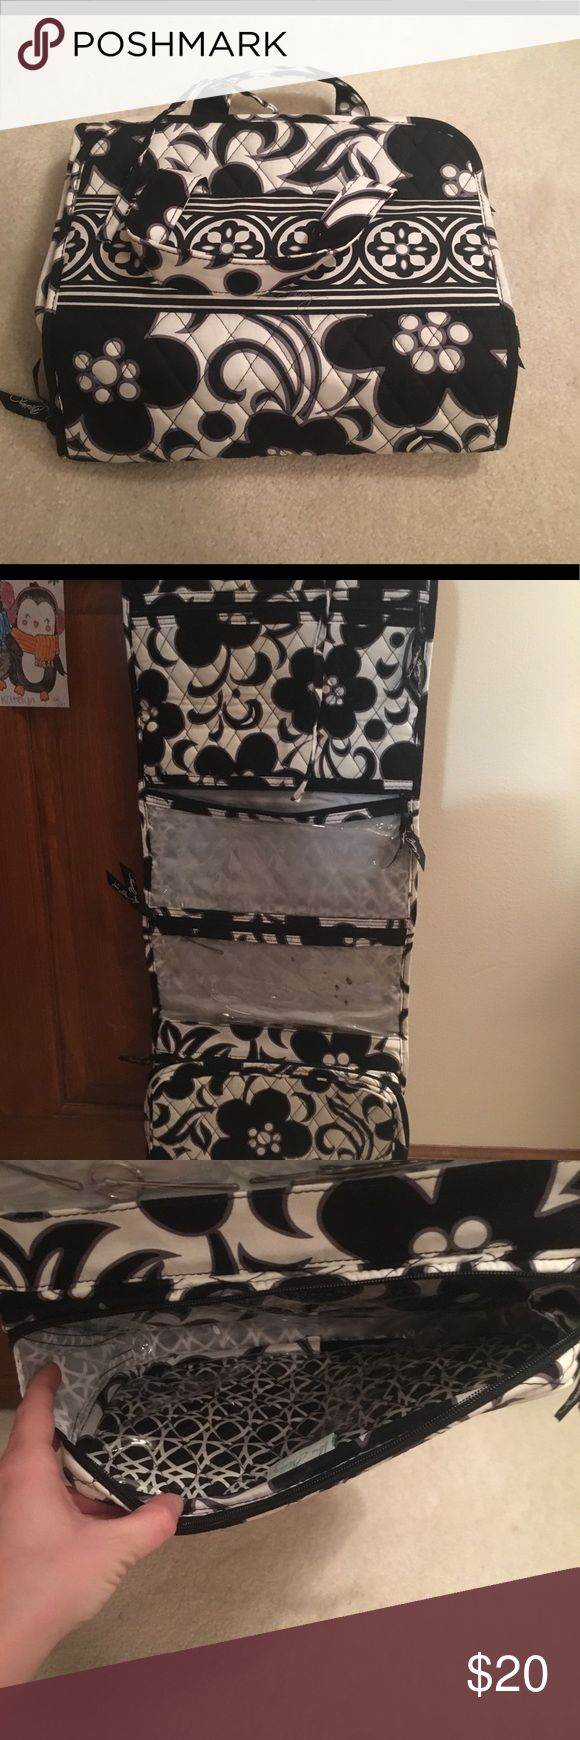 Vera Bradley hanging cosmetic bag Gently used! Will clean before shipping Vera Bradley Bags Cosmetic Bags & Cases